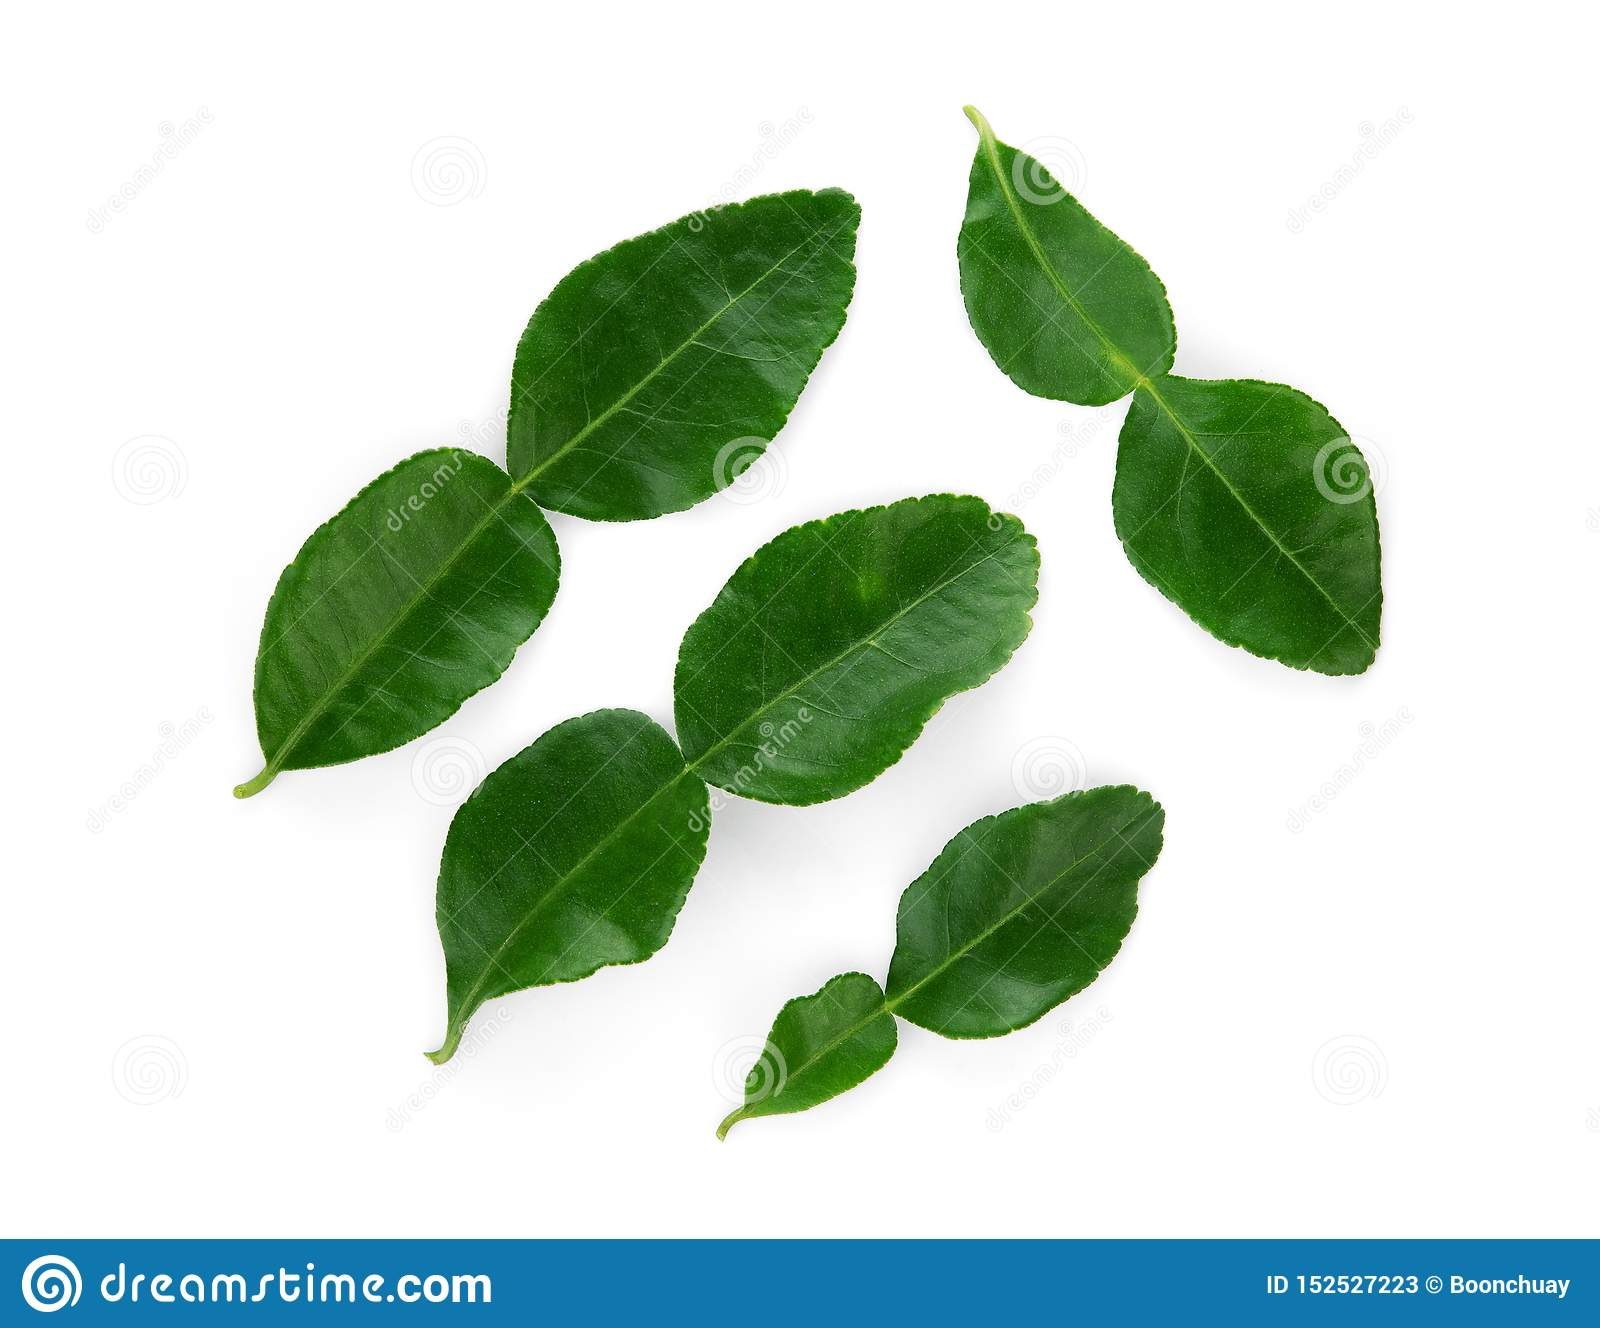 Bergamot leaf isolated on white background, top view